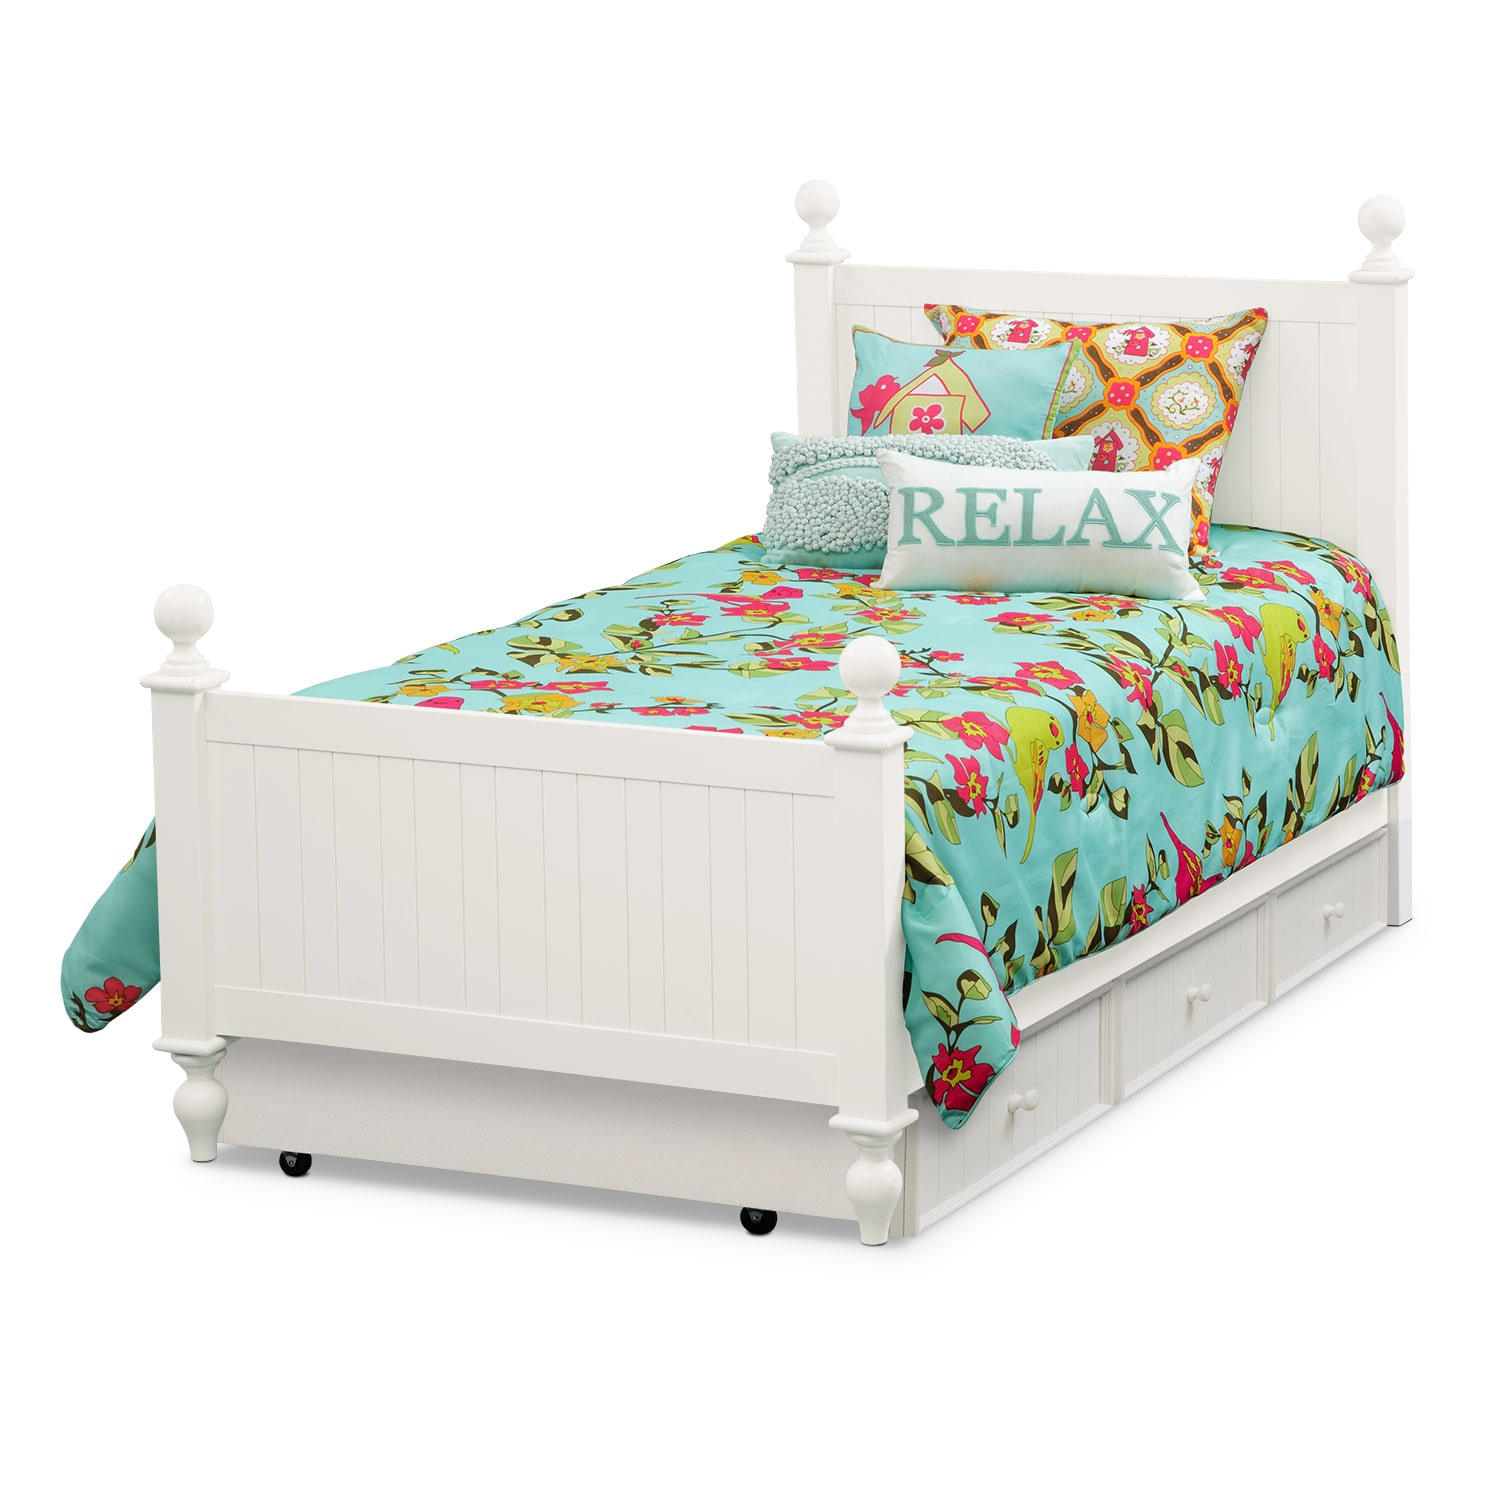 Kids Furniture - Colorworks Twin Bed with Trundle - White